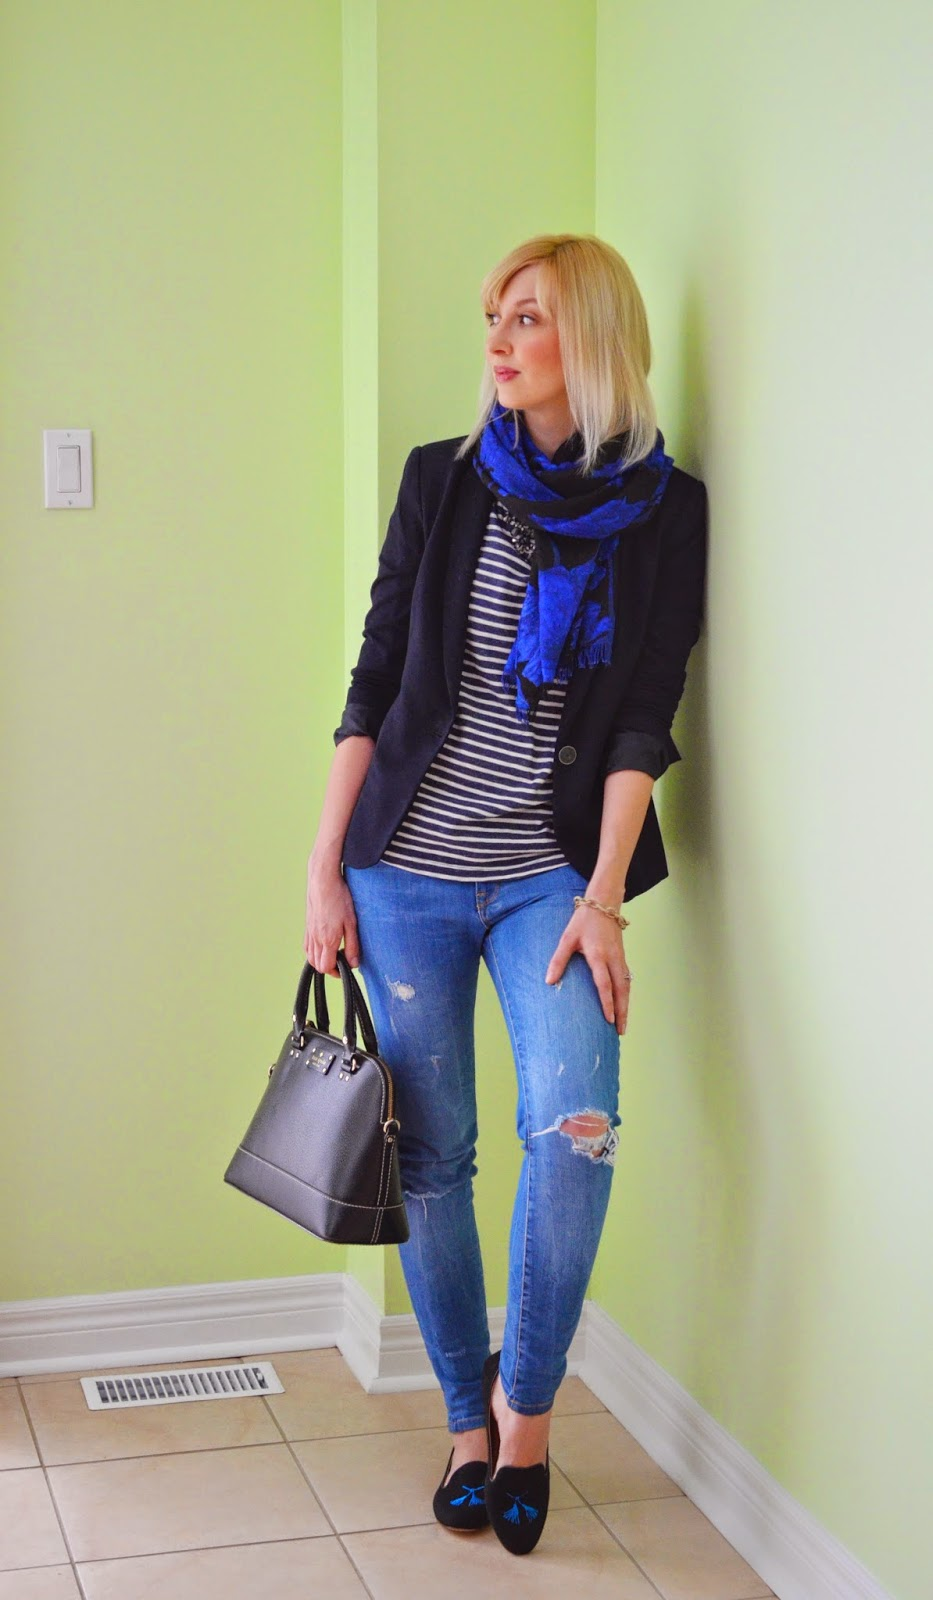 Style, OOTD, business casual, casual, Zara, Kate Spade, J. Crew, J. Crew factory, navy, navy and stripes, stripes, vibes,